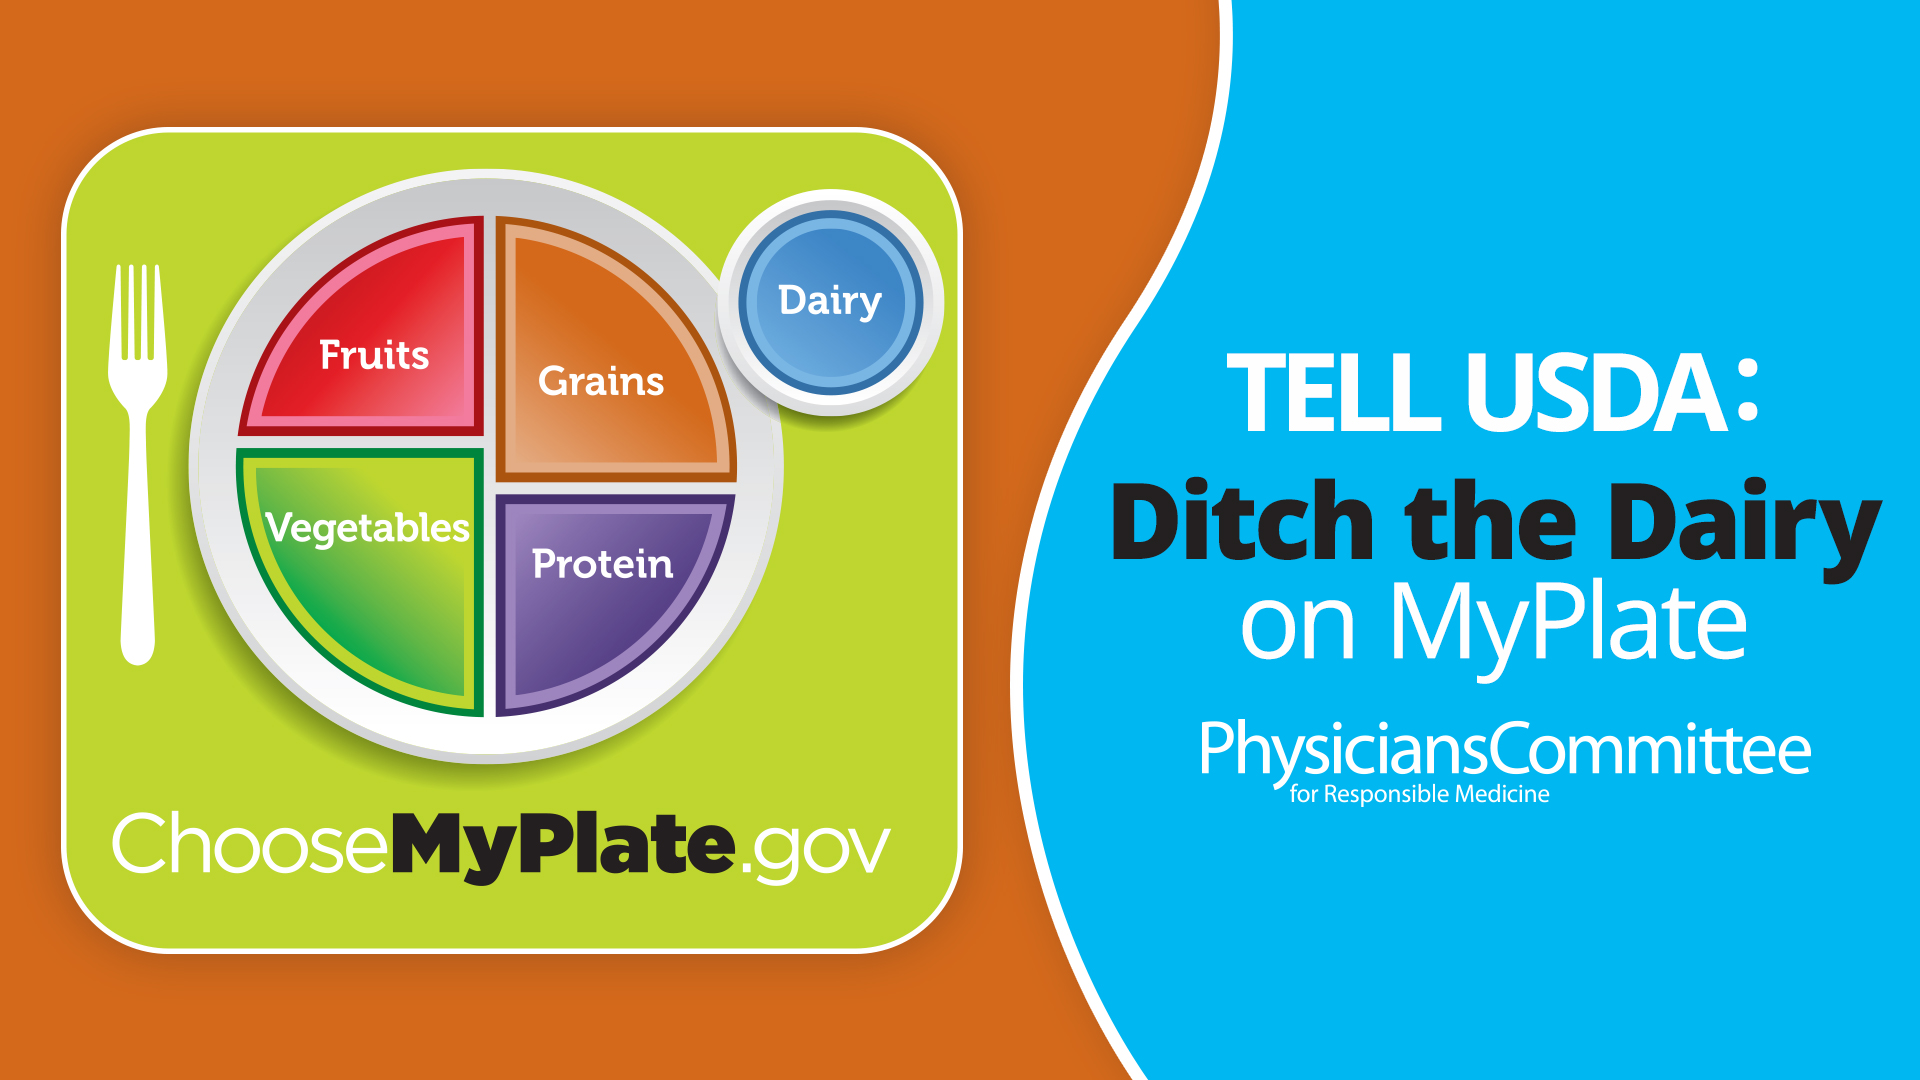 Doctors Group Calls for Dairy-Free MyPlate Ahead of June 2 Anniversary